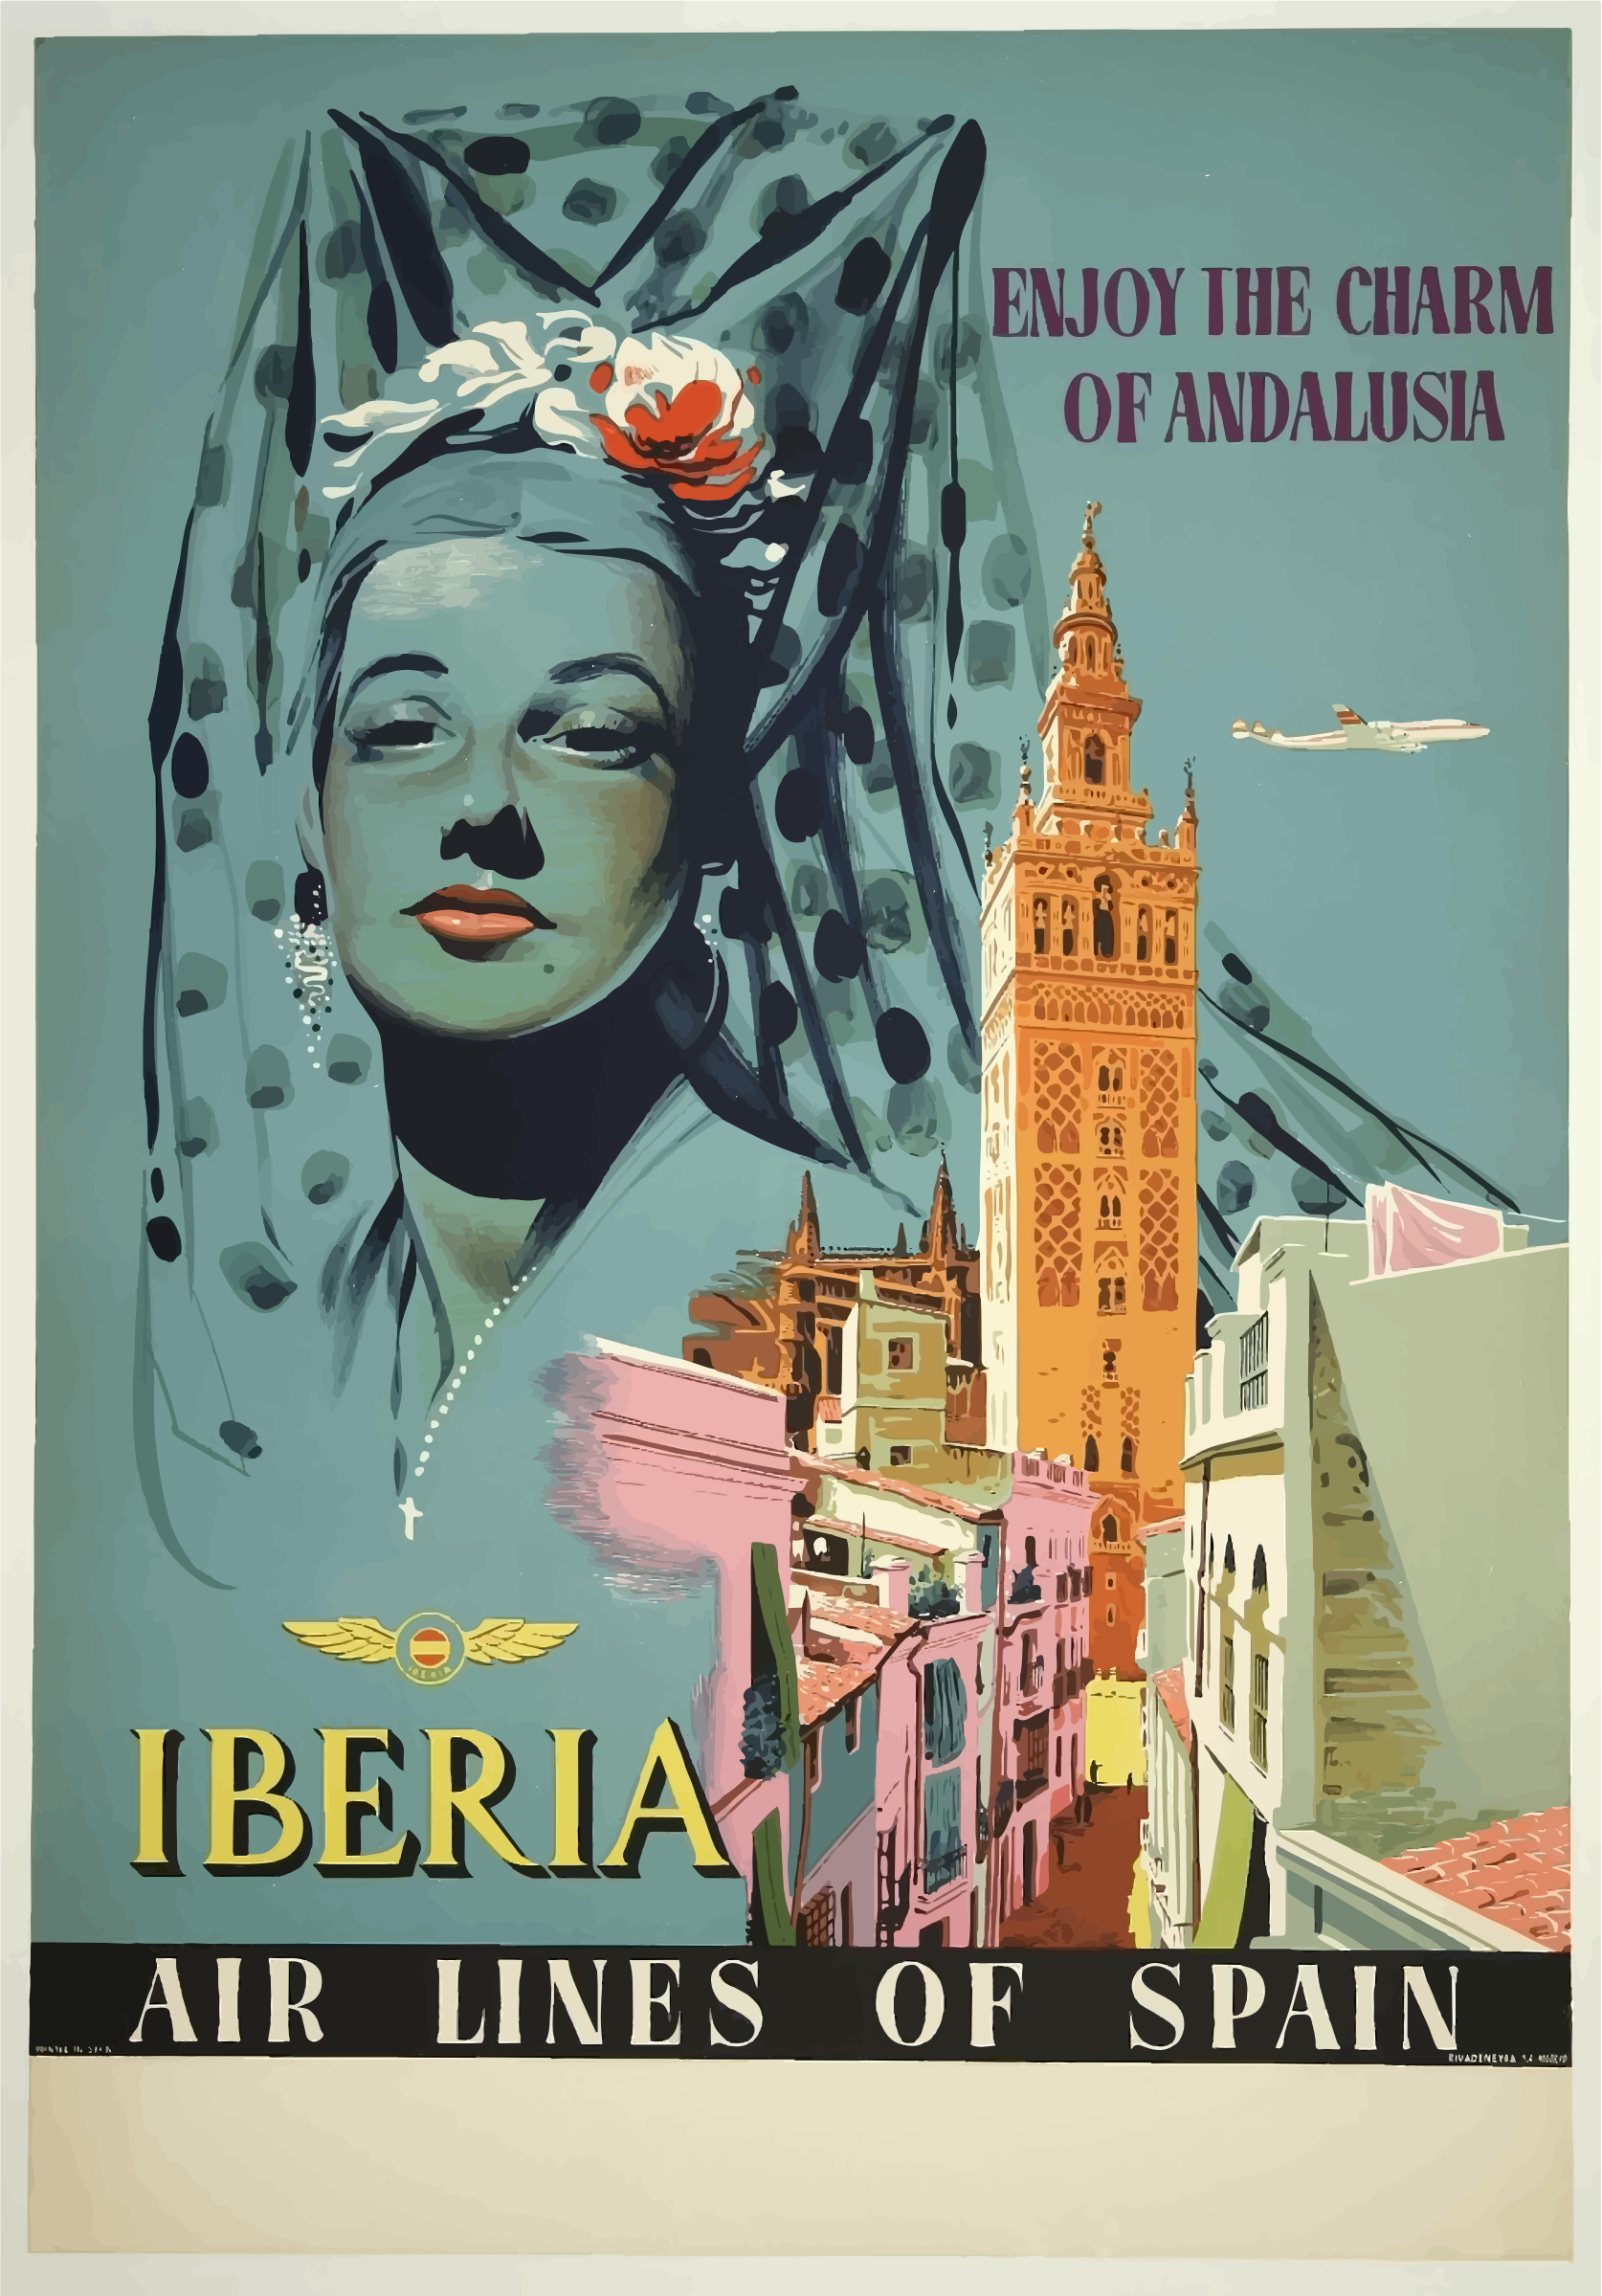 Vintage-Travel-Poster-Andalusia-Spain.png